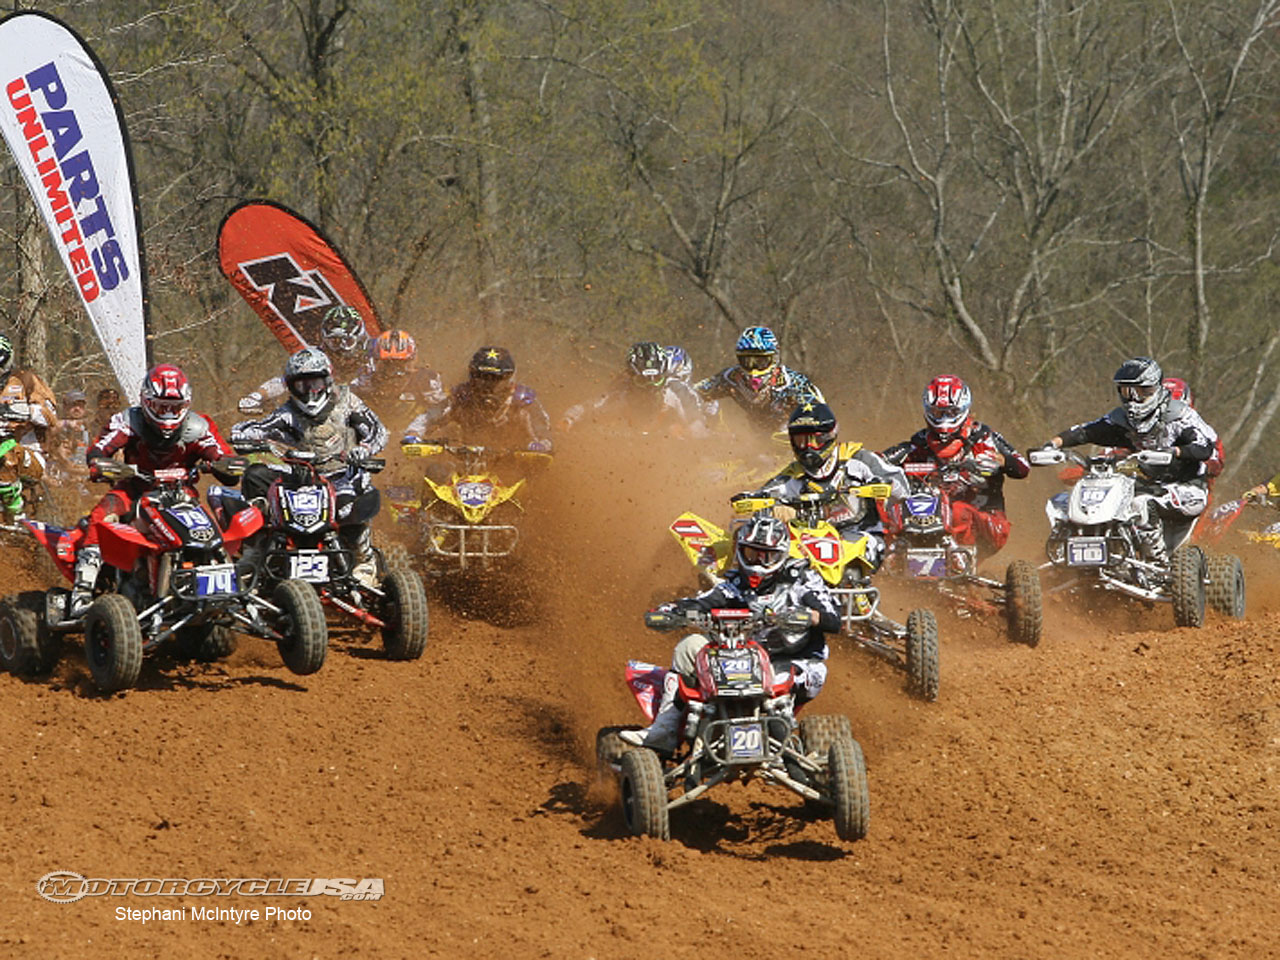 ATV Motocross Backgrounds, Compatible - PC, Mobile, Gadgets| 1280x960 px